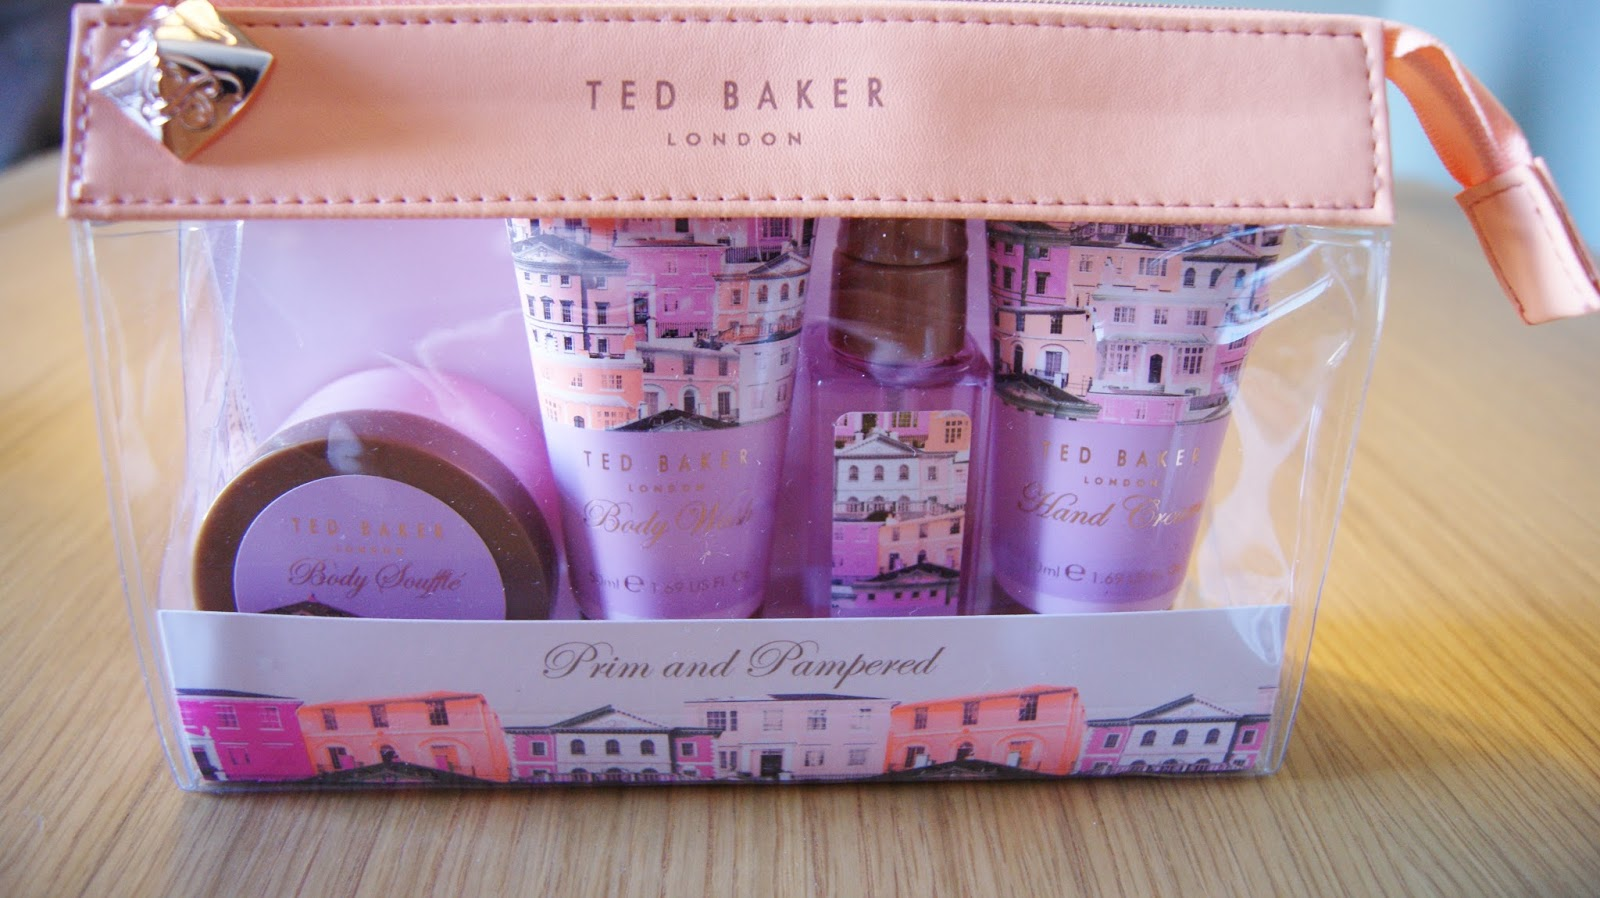 Ted Baker Prim & Pampered Set